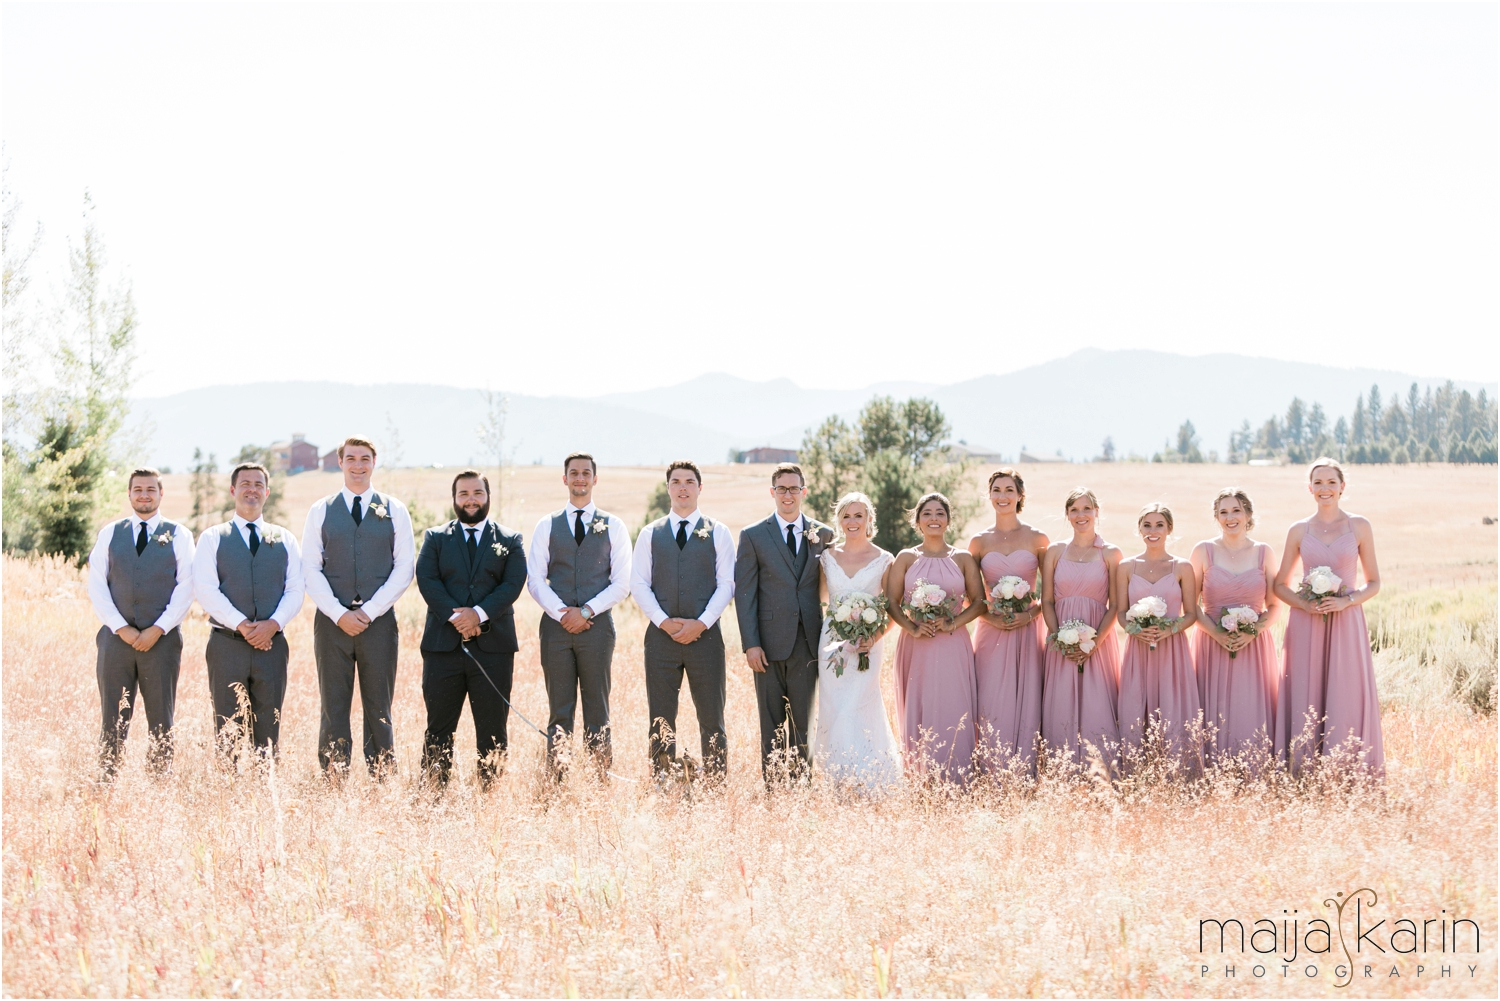 McCall-Idaho-Wedding-Maija-Karin-Photography_0050.jpg